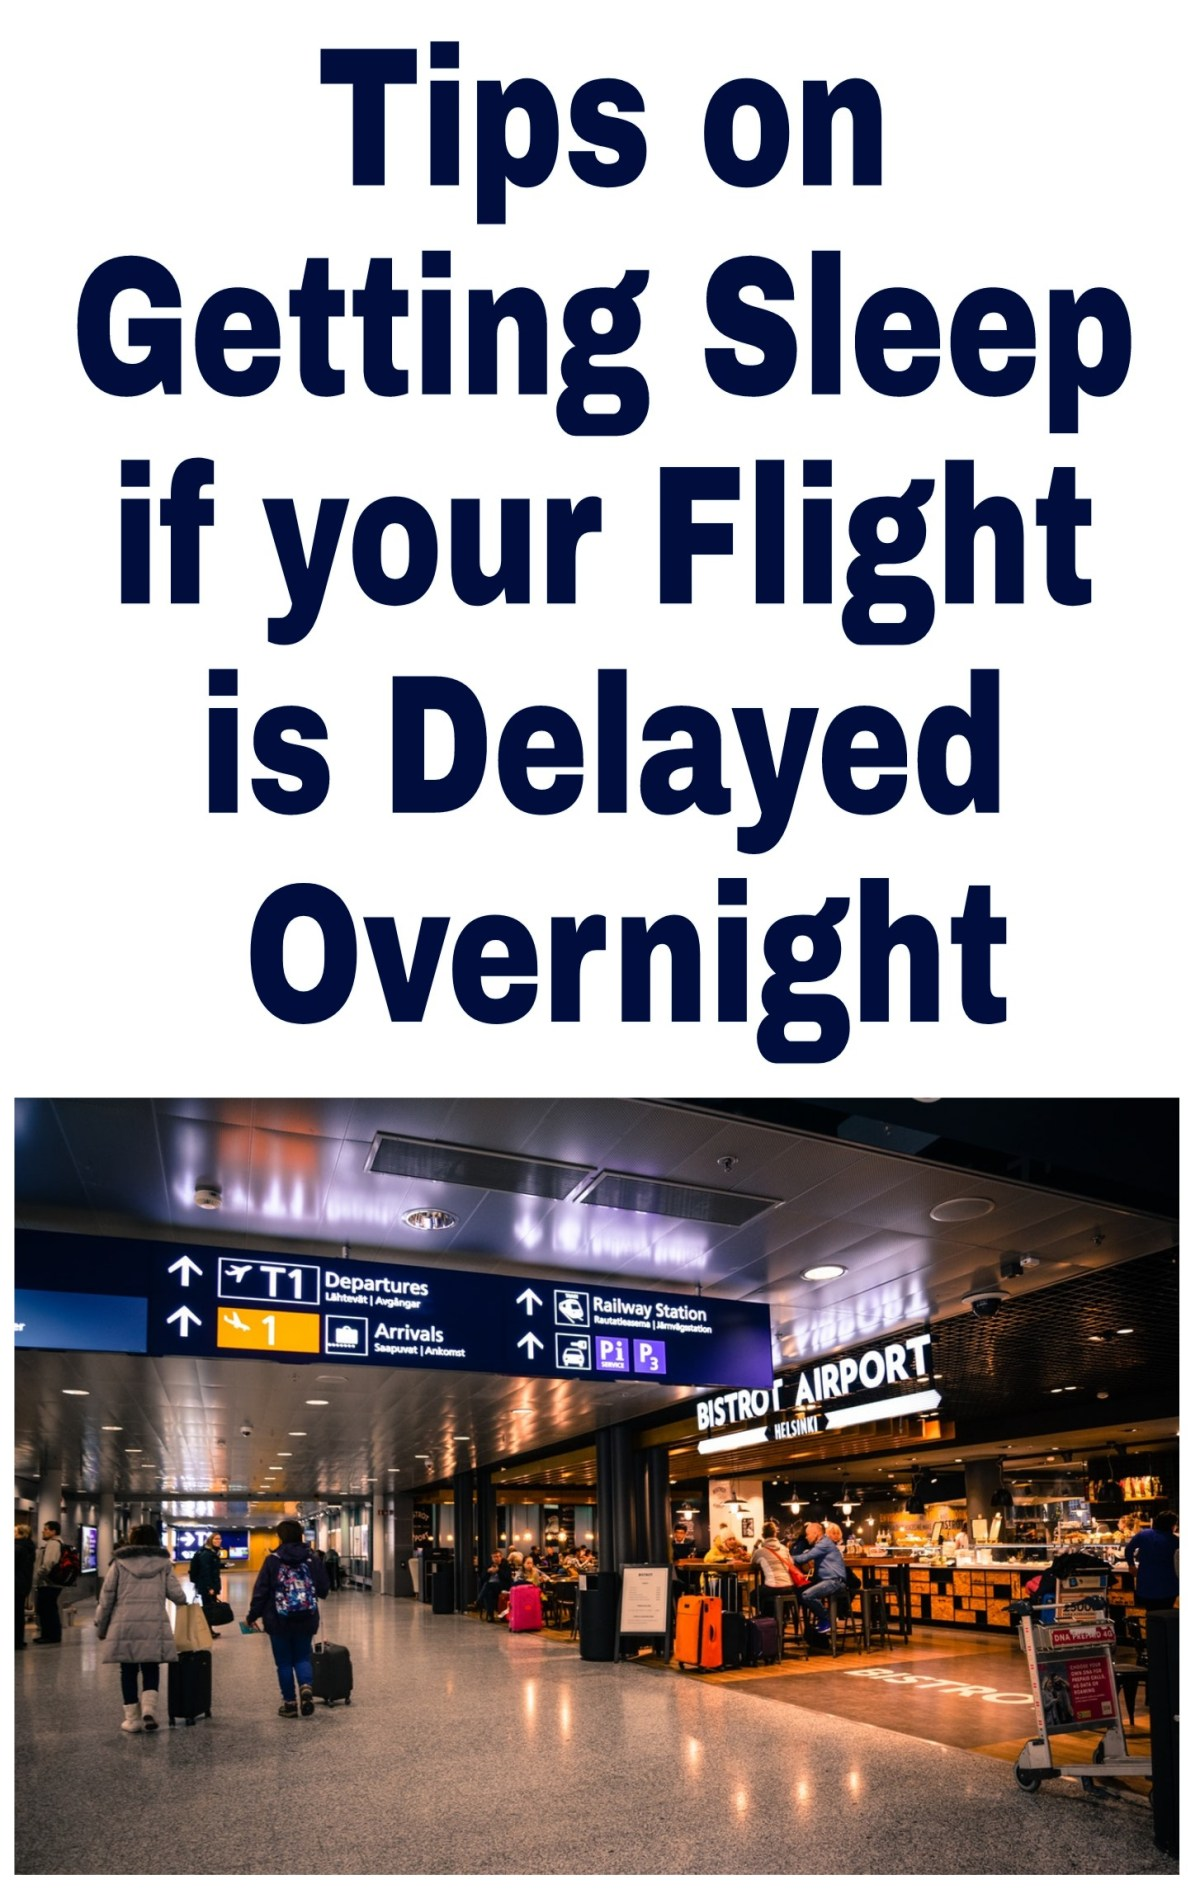 Tips on Getting Some Sleep if your Flight is Delayed Overnight